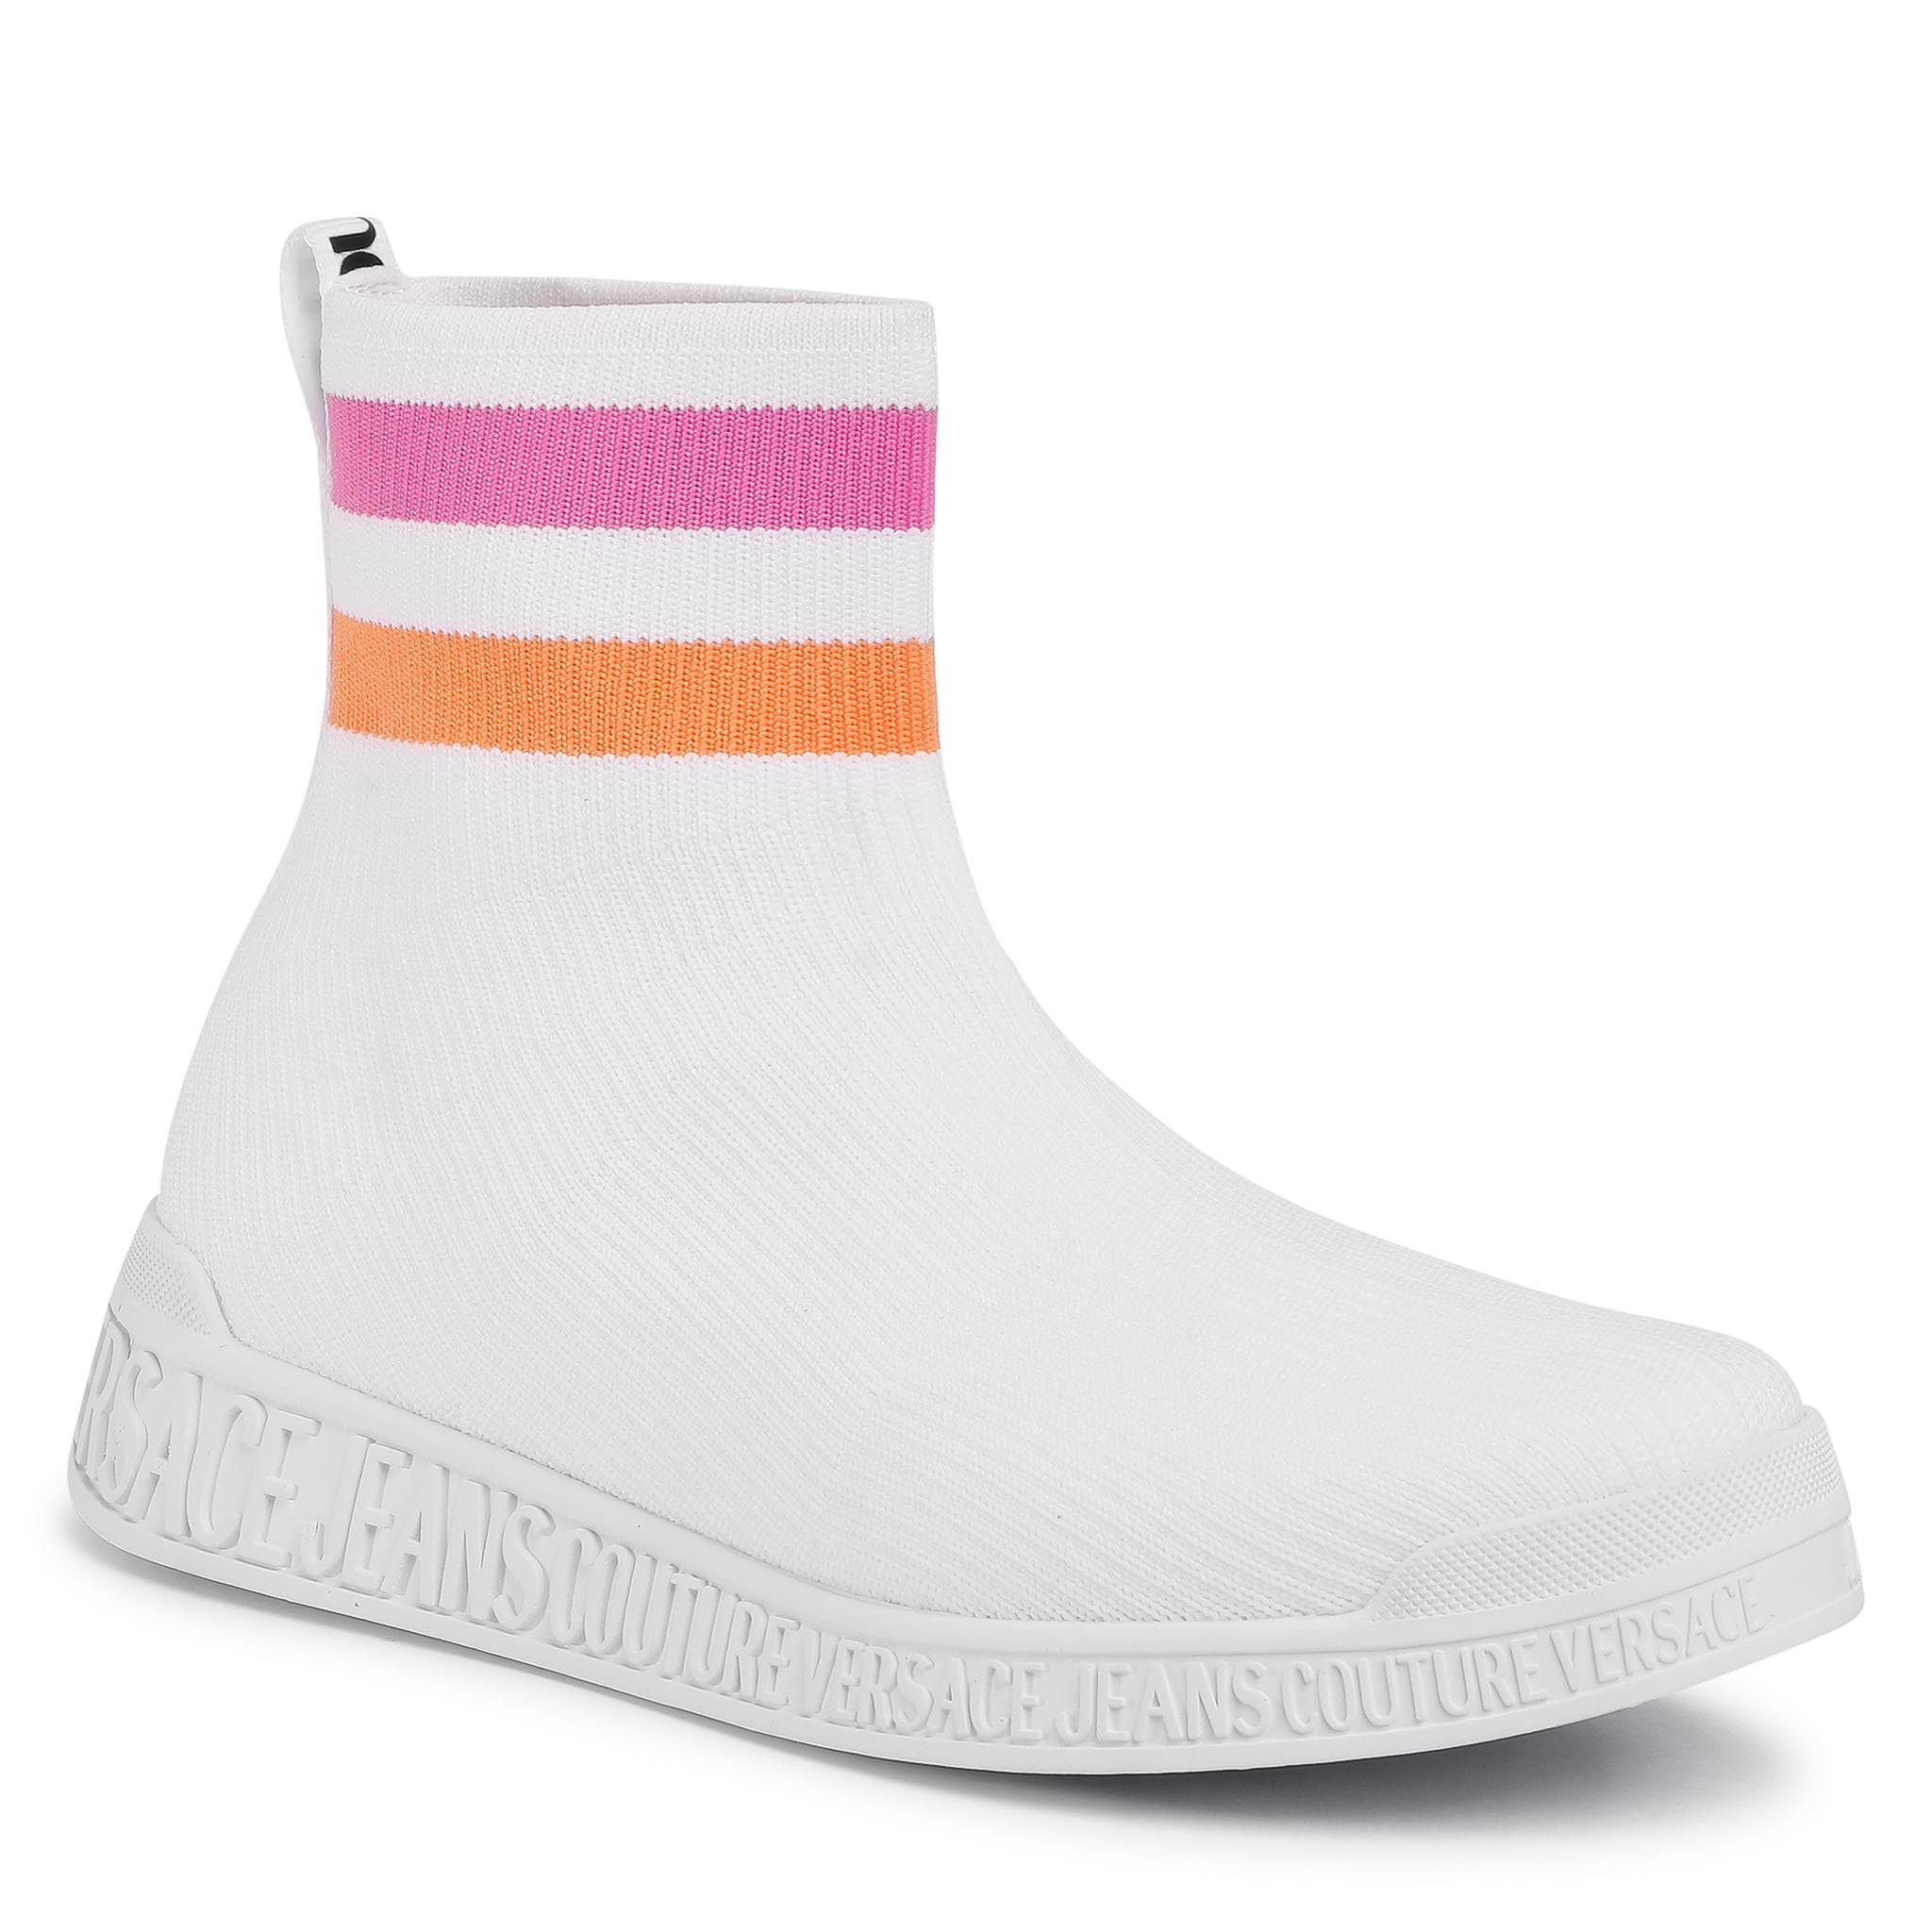 Sneakers VERSACE JEANS COUTURE - E0VVBSP2 71525 003